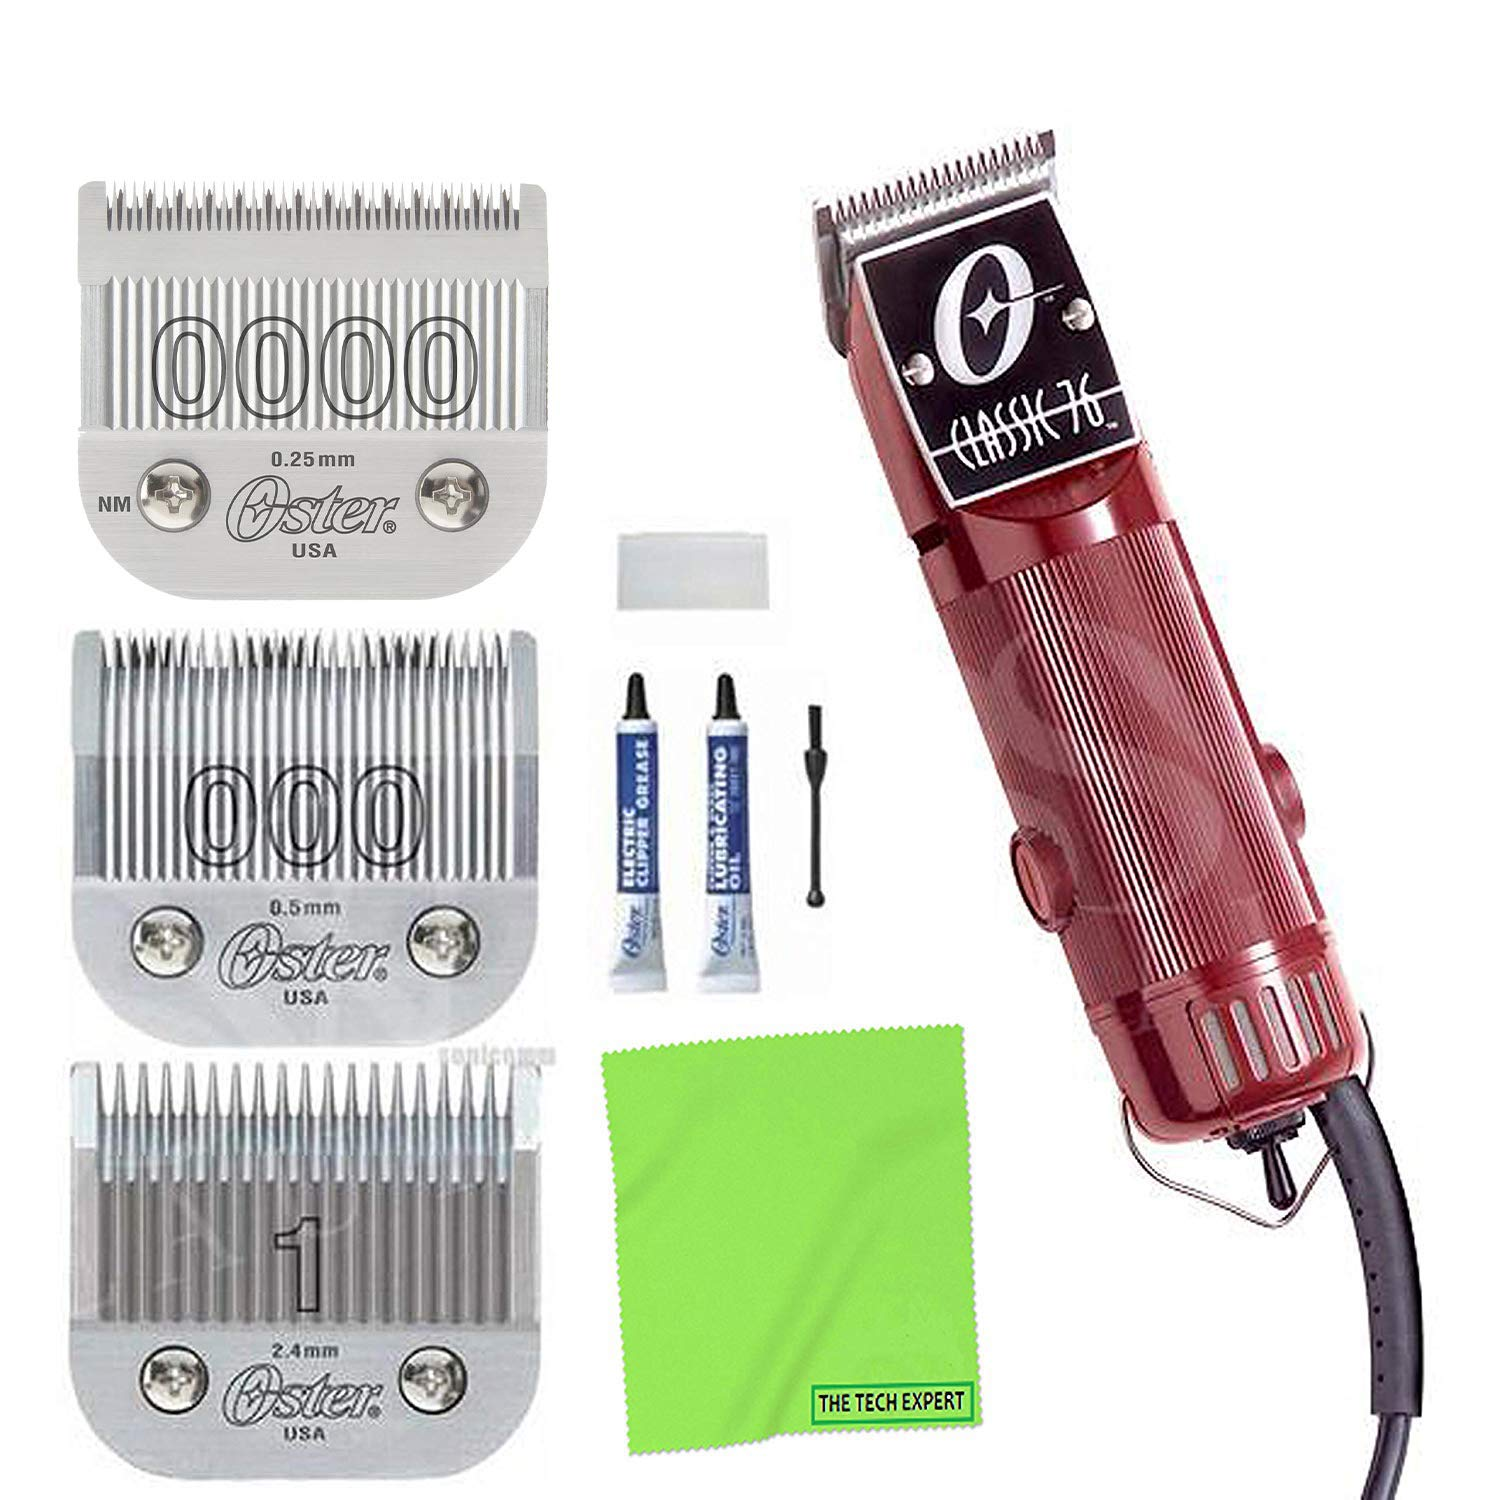 OSTER Classic 122 Universal Motor Hair Clipper + 122 Detachable Blades - #12,  12 and # 120 and Cleaning Cloth